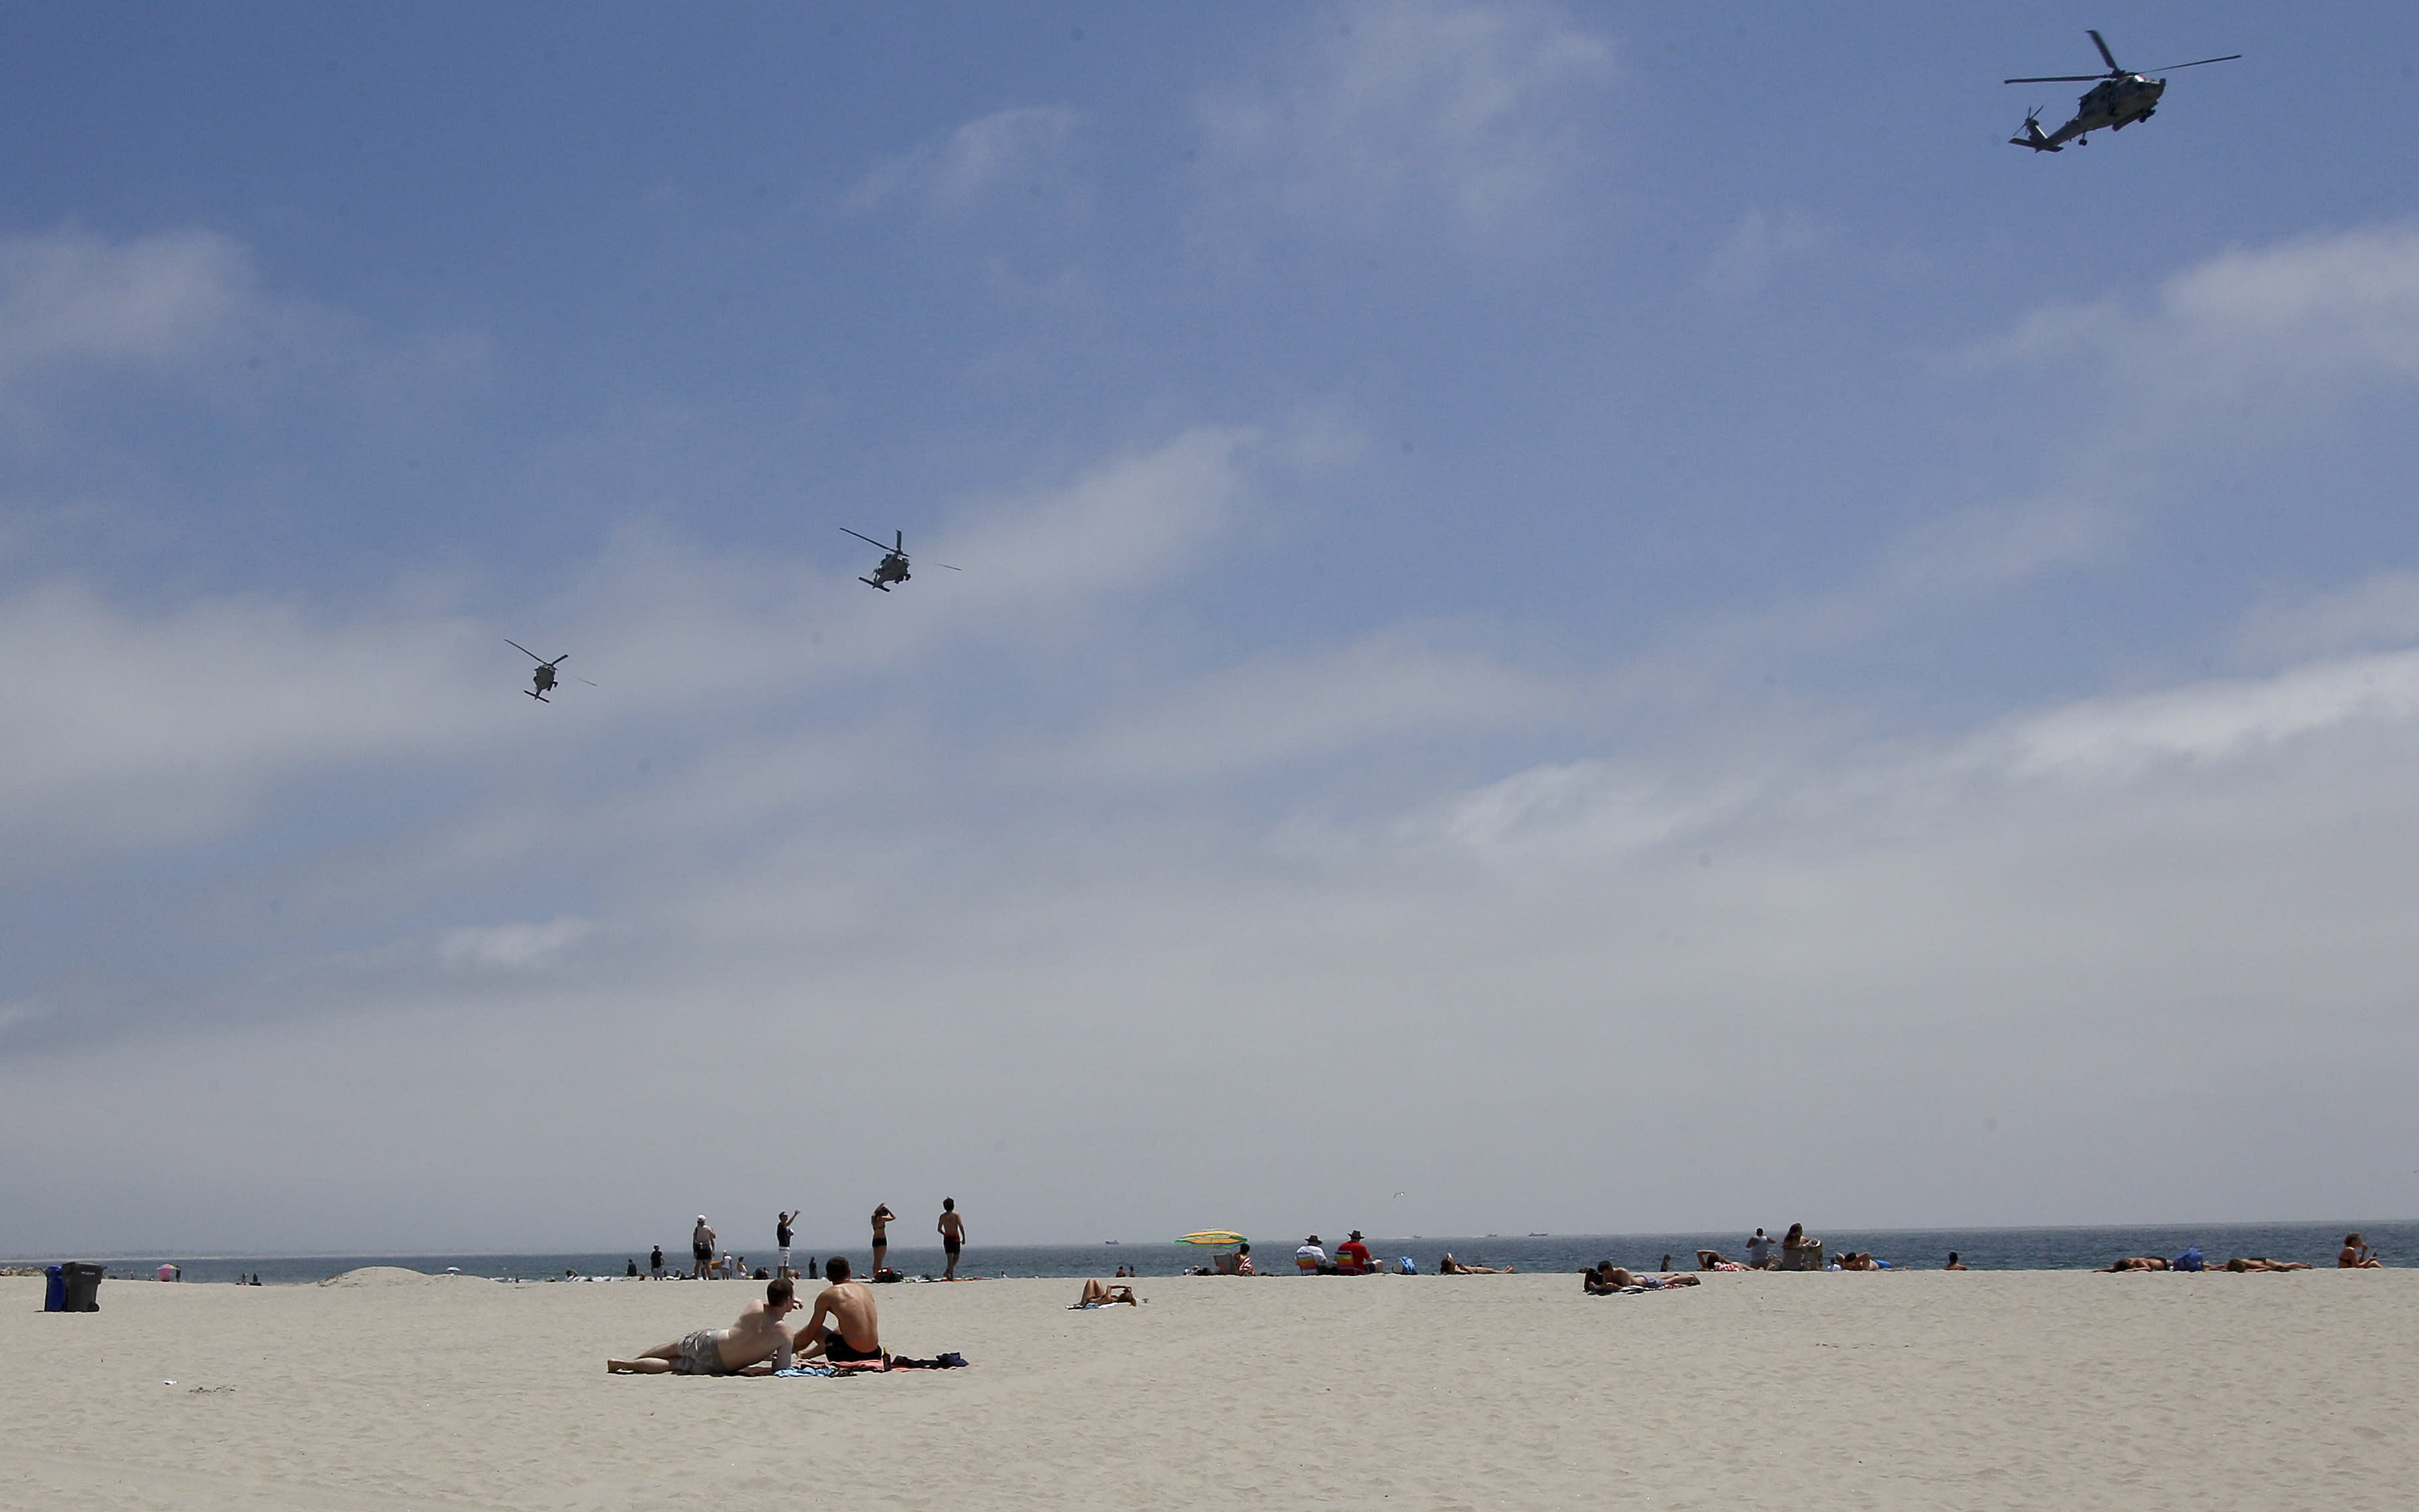 "In this May 22, 2012 photo, part of a Navy helicopter squadron flies over beach goers on the Coronado Beach in Coronado, Calif. The Coronado Beach has been named America's best beach. Coronado Beach tops the 2012 list of Top 10 Beaches produced annually by coastal expert Stephen P. Leatherman, also known as ""Dr. Beach,"" director of Florida International University's Laboratory for Coastal Research. (AP Photo/Lenny Ignelzi)"